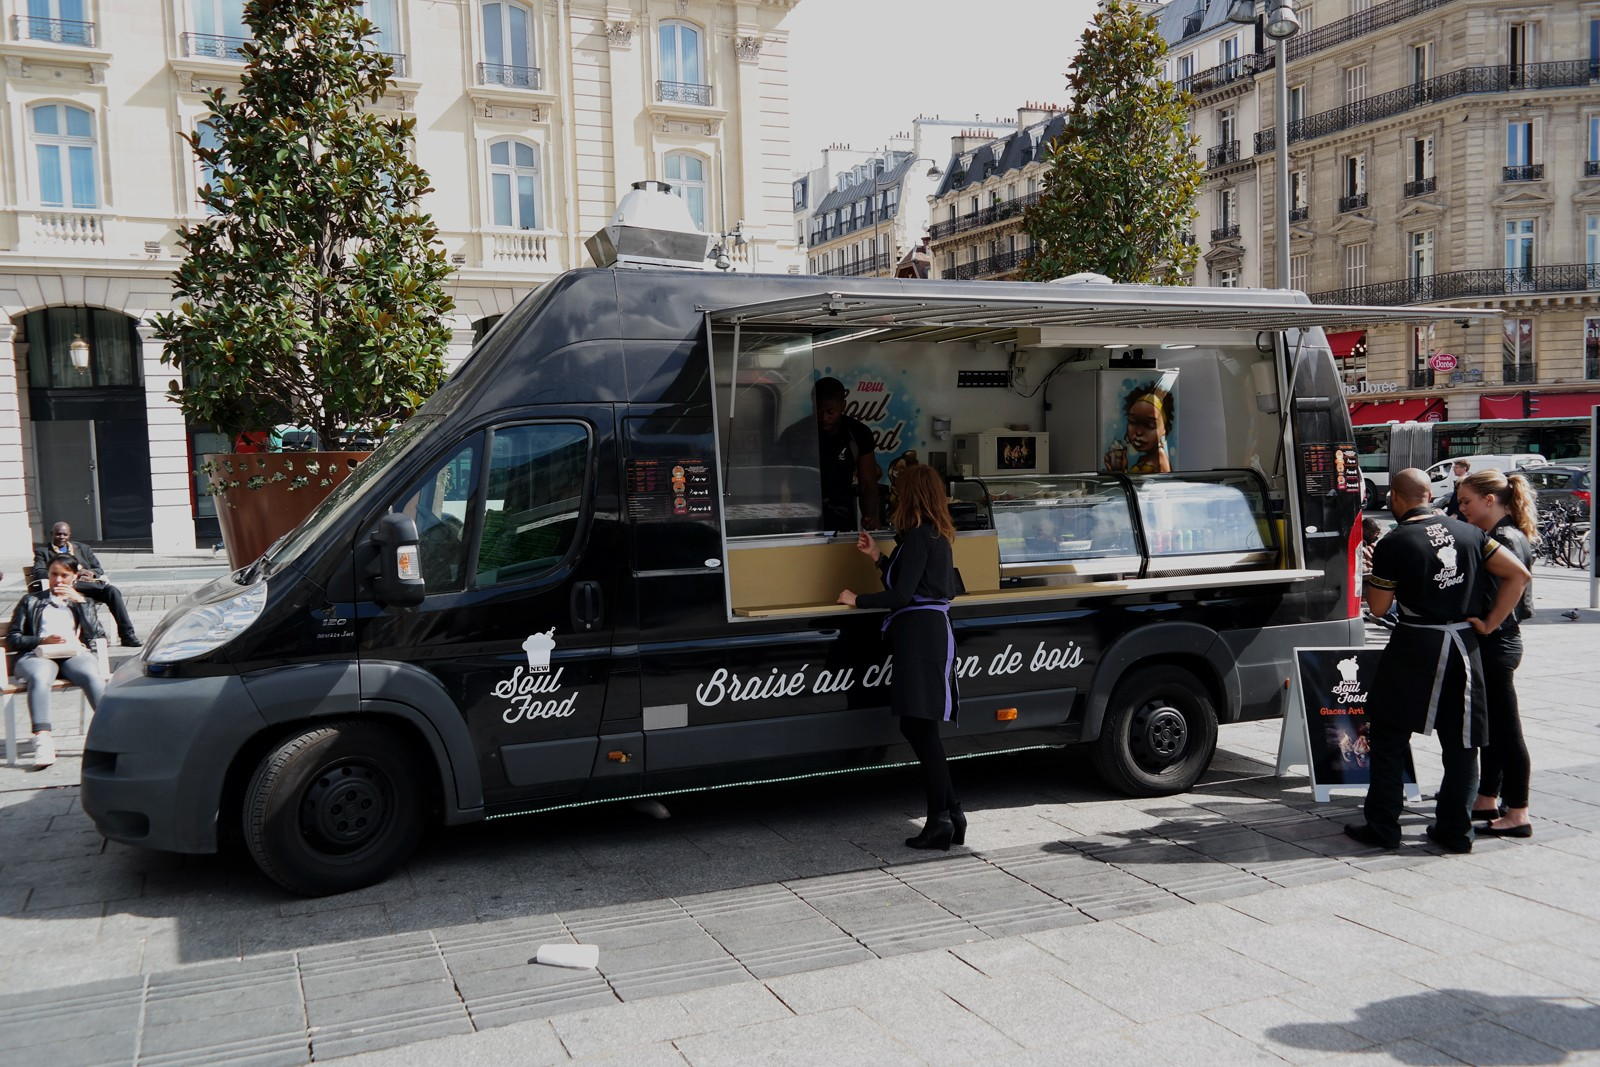 New Soul Food truck by Rudy Laine camion graffé pour cuisine afro-disiaque braisée au feu de bois photo united states of paris blog